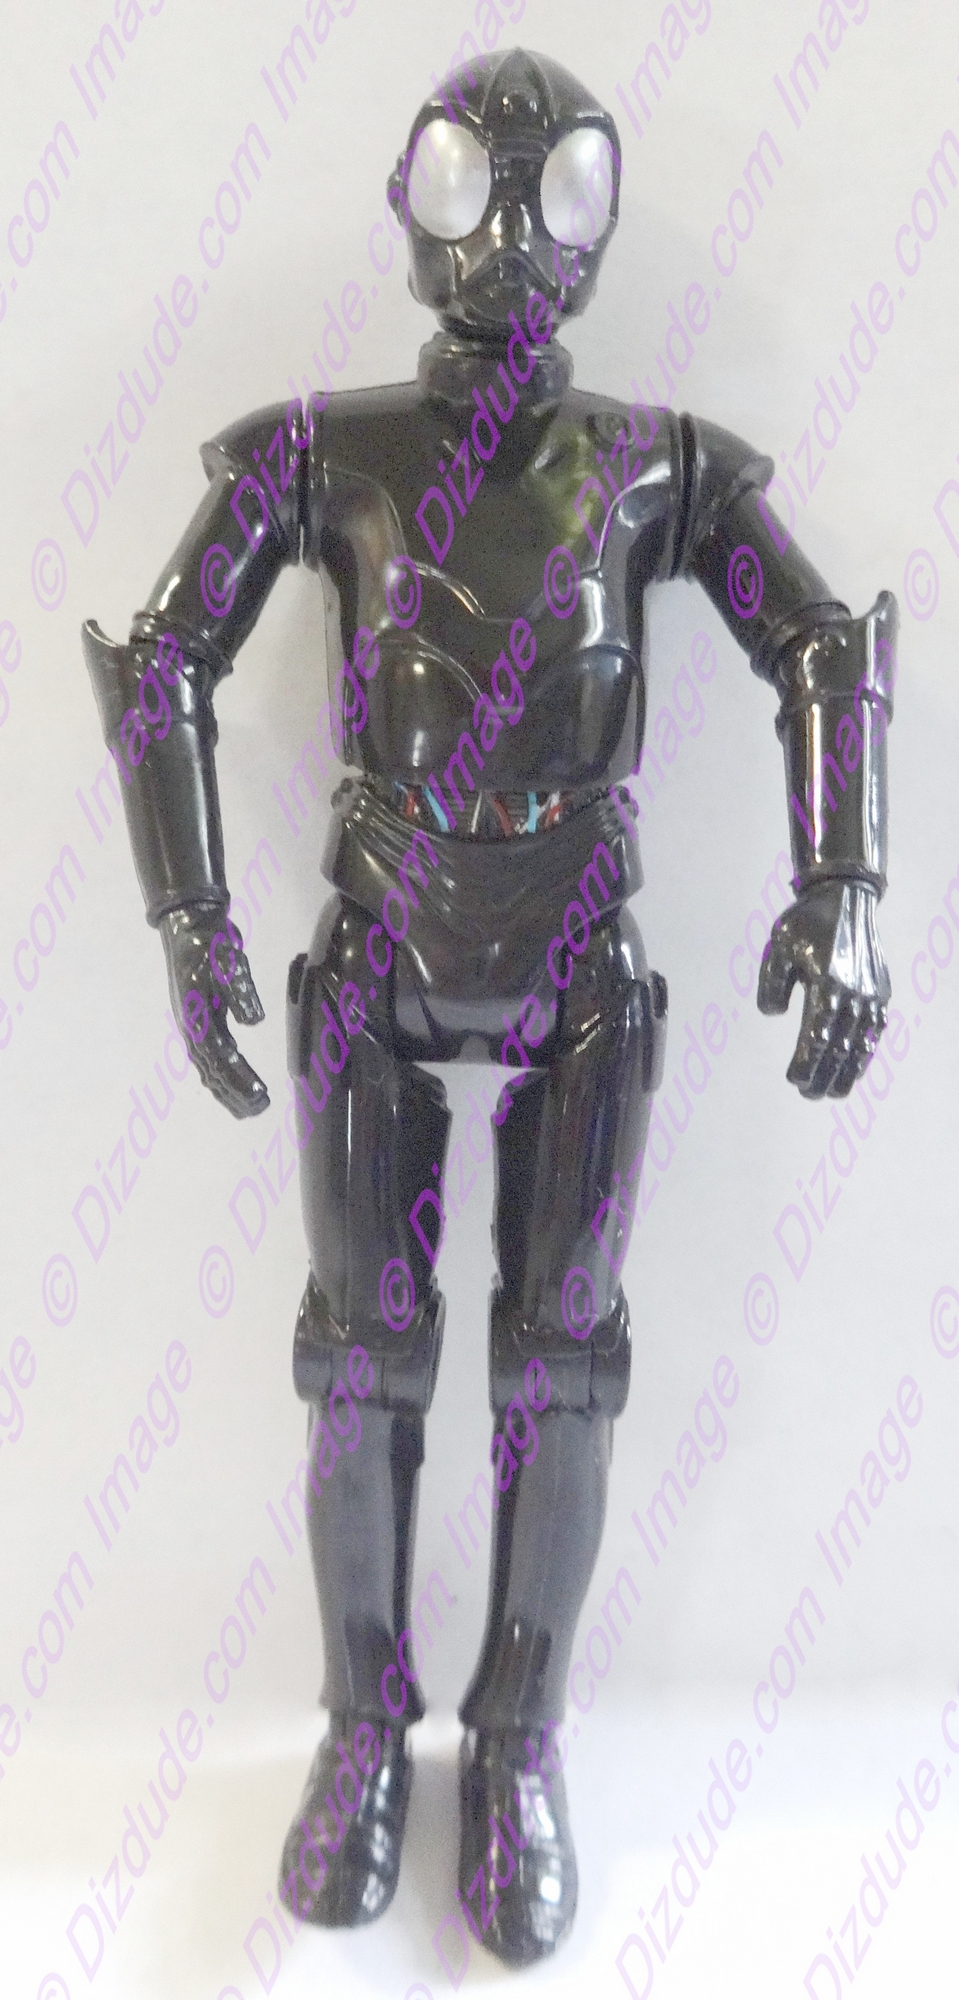 Black RA Protocol Droid from Disney Star Wars Build-A-Droid Factory